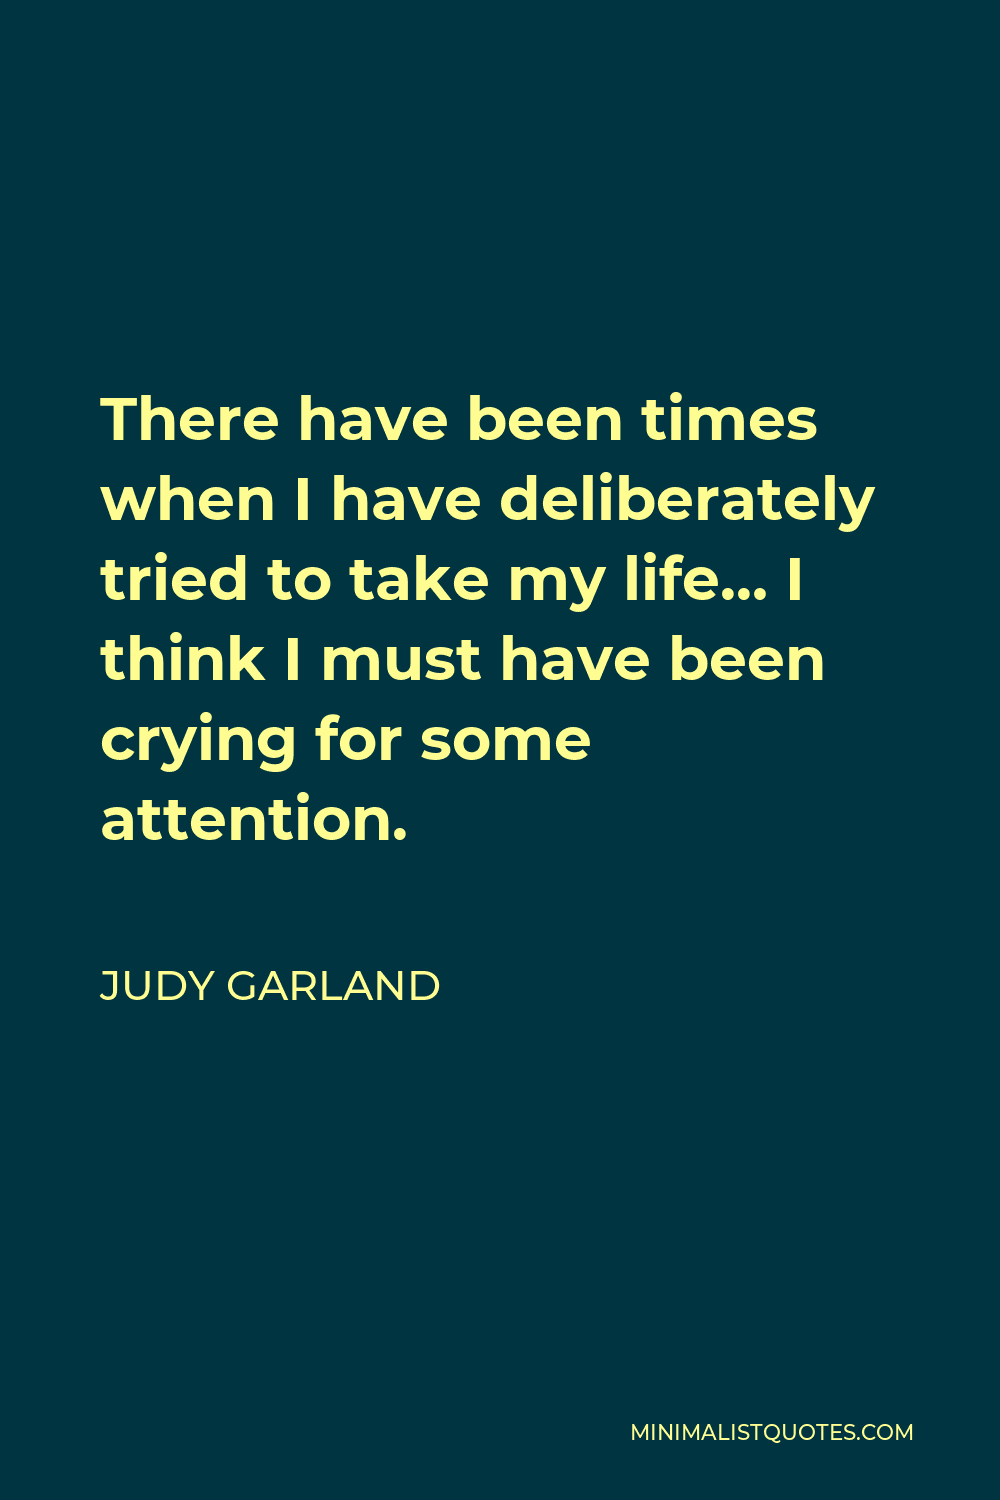 Judy Garland Quote - There have been times when I have deliberately tried to take my life… I think I must have been crying for some attention.